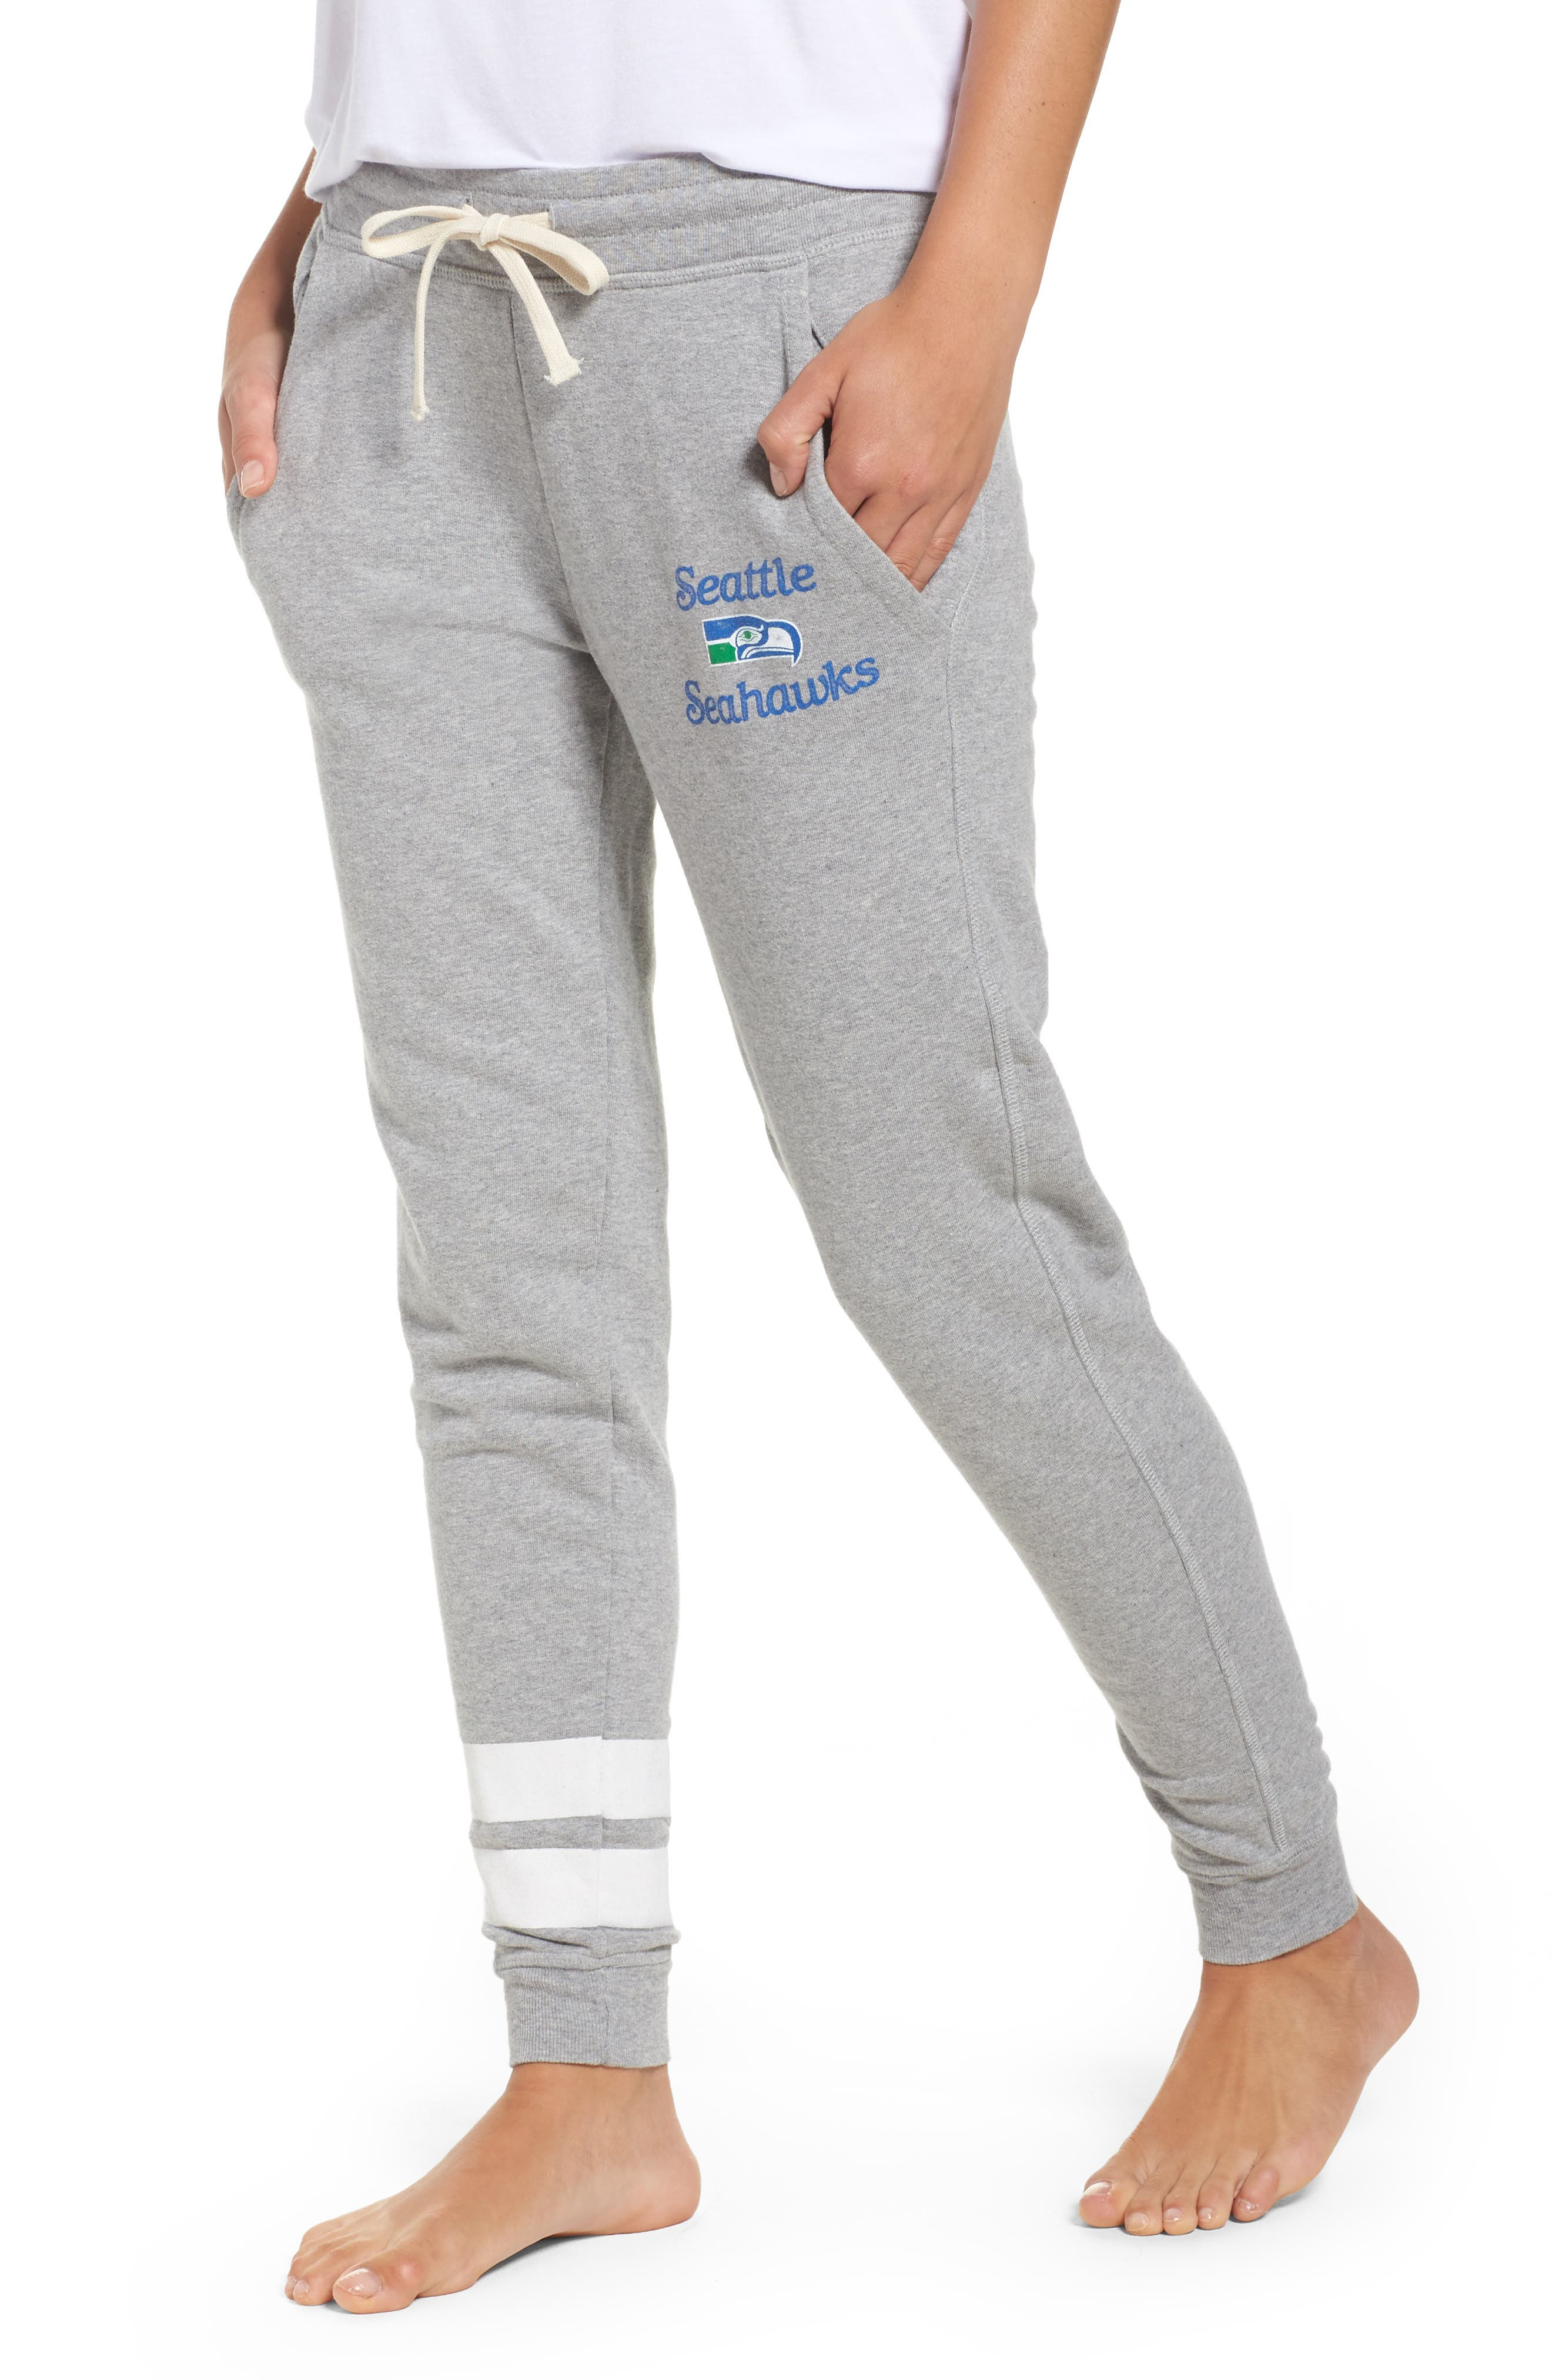 Main Image - Junk Food NFL Seattle Seahawks Sunday Sweatpants